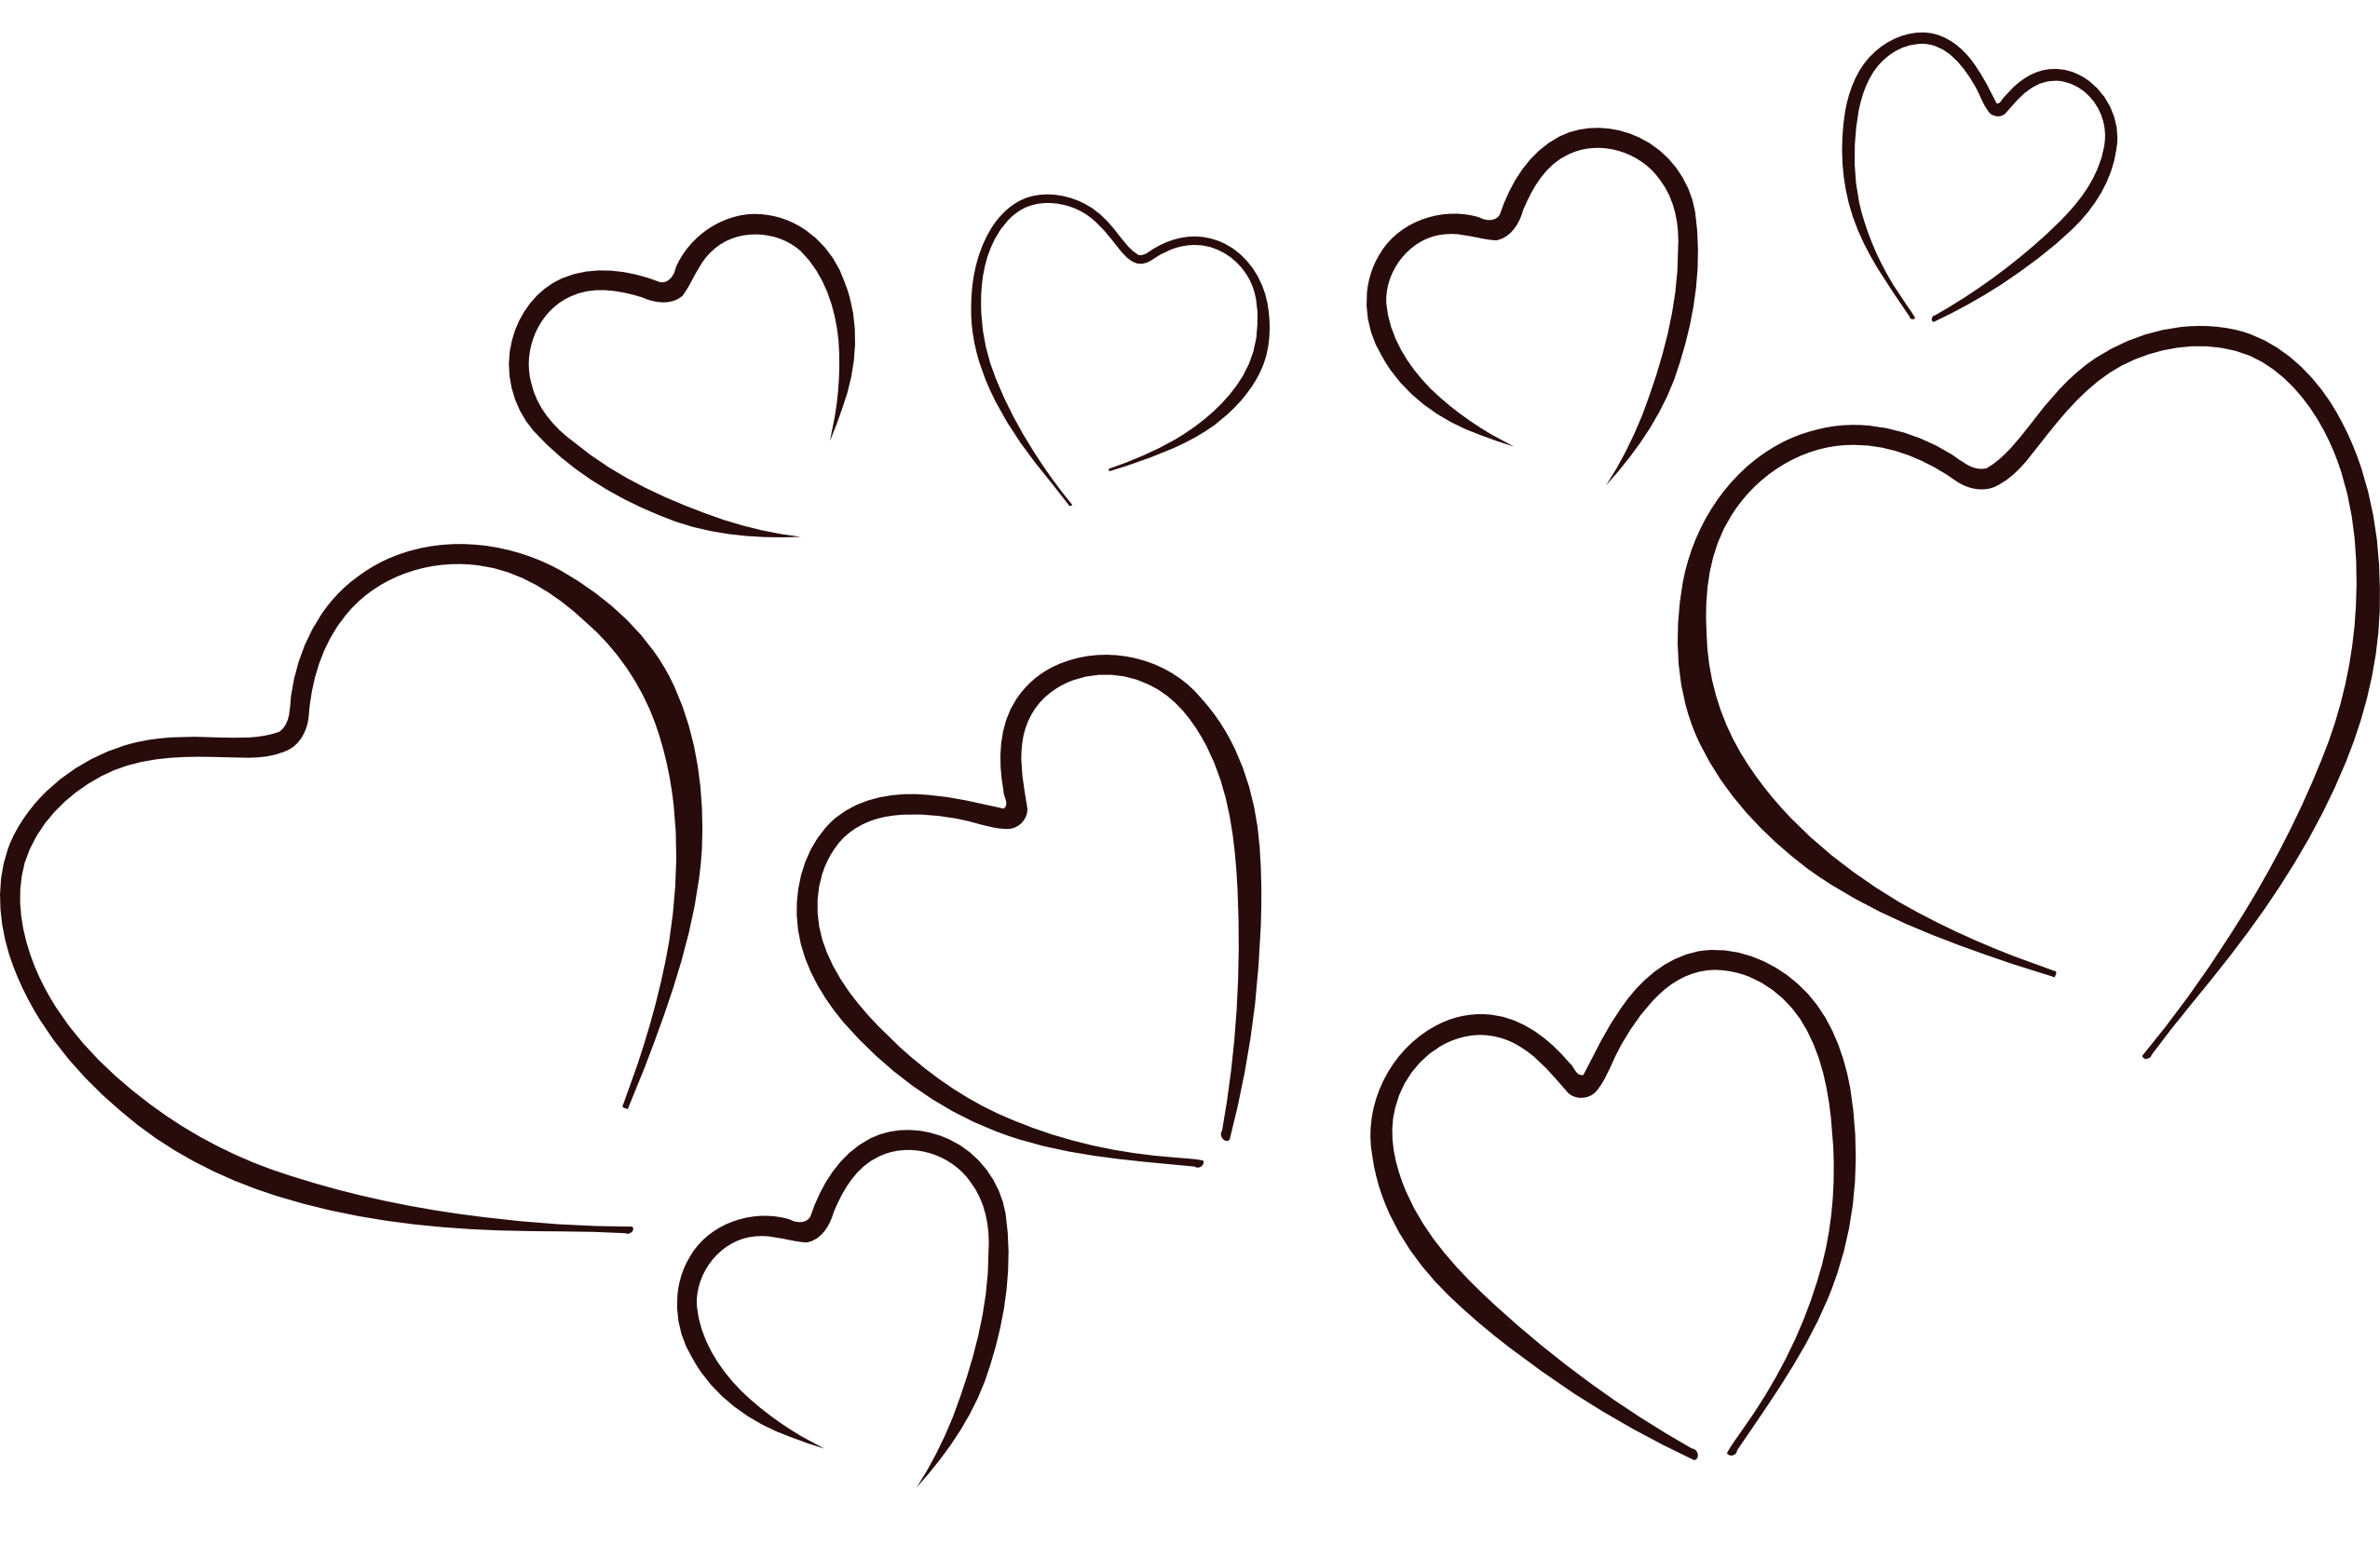 Free heart images download. Hearts clipart black and white